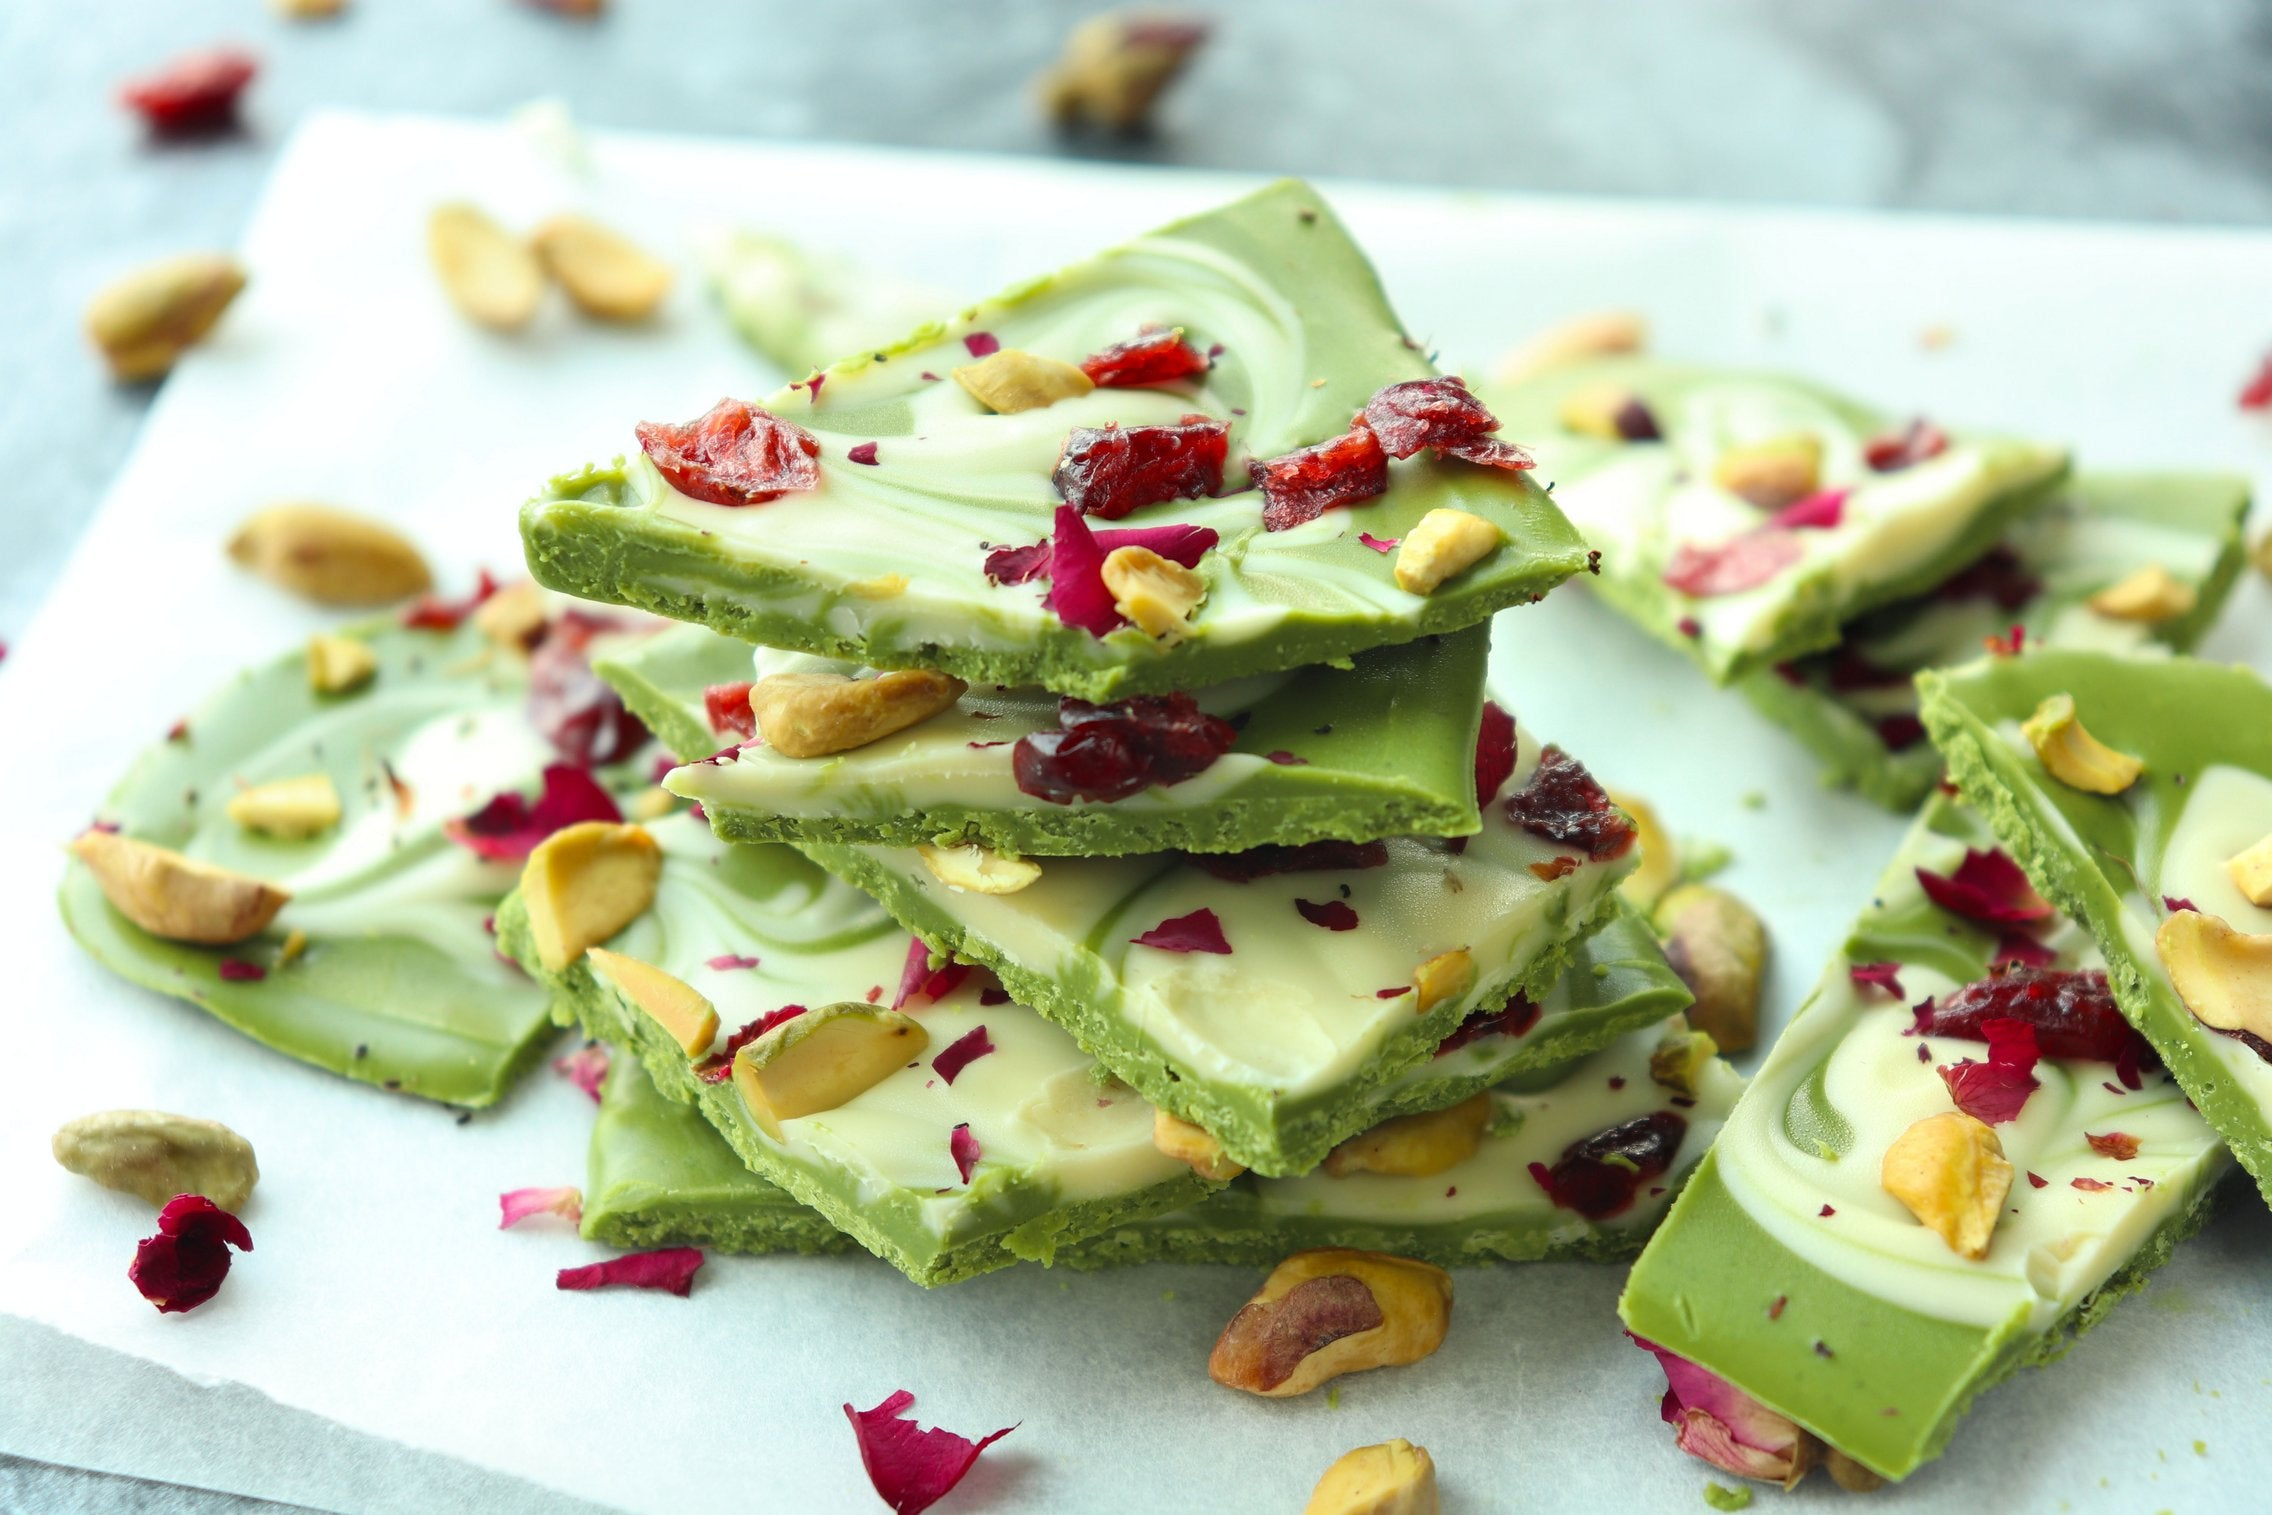 Matcha White Chocolate Bark with Pistachios and Dried Cranberries